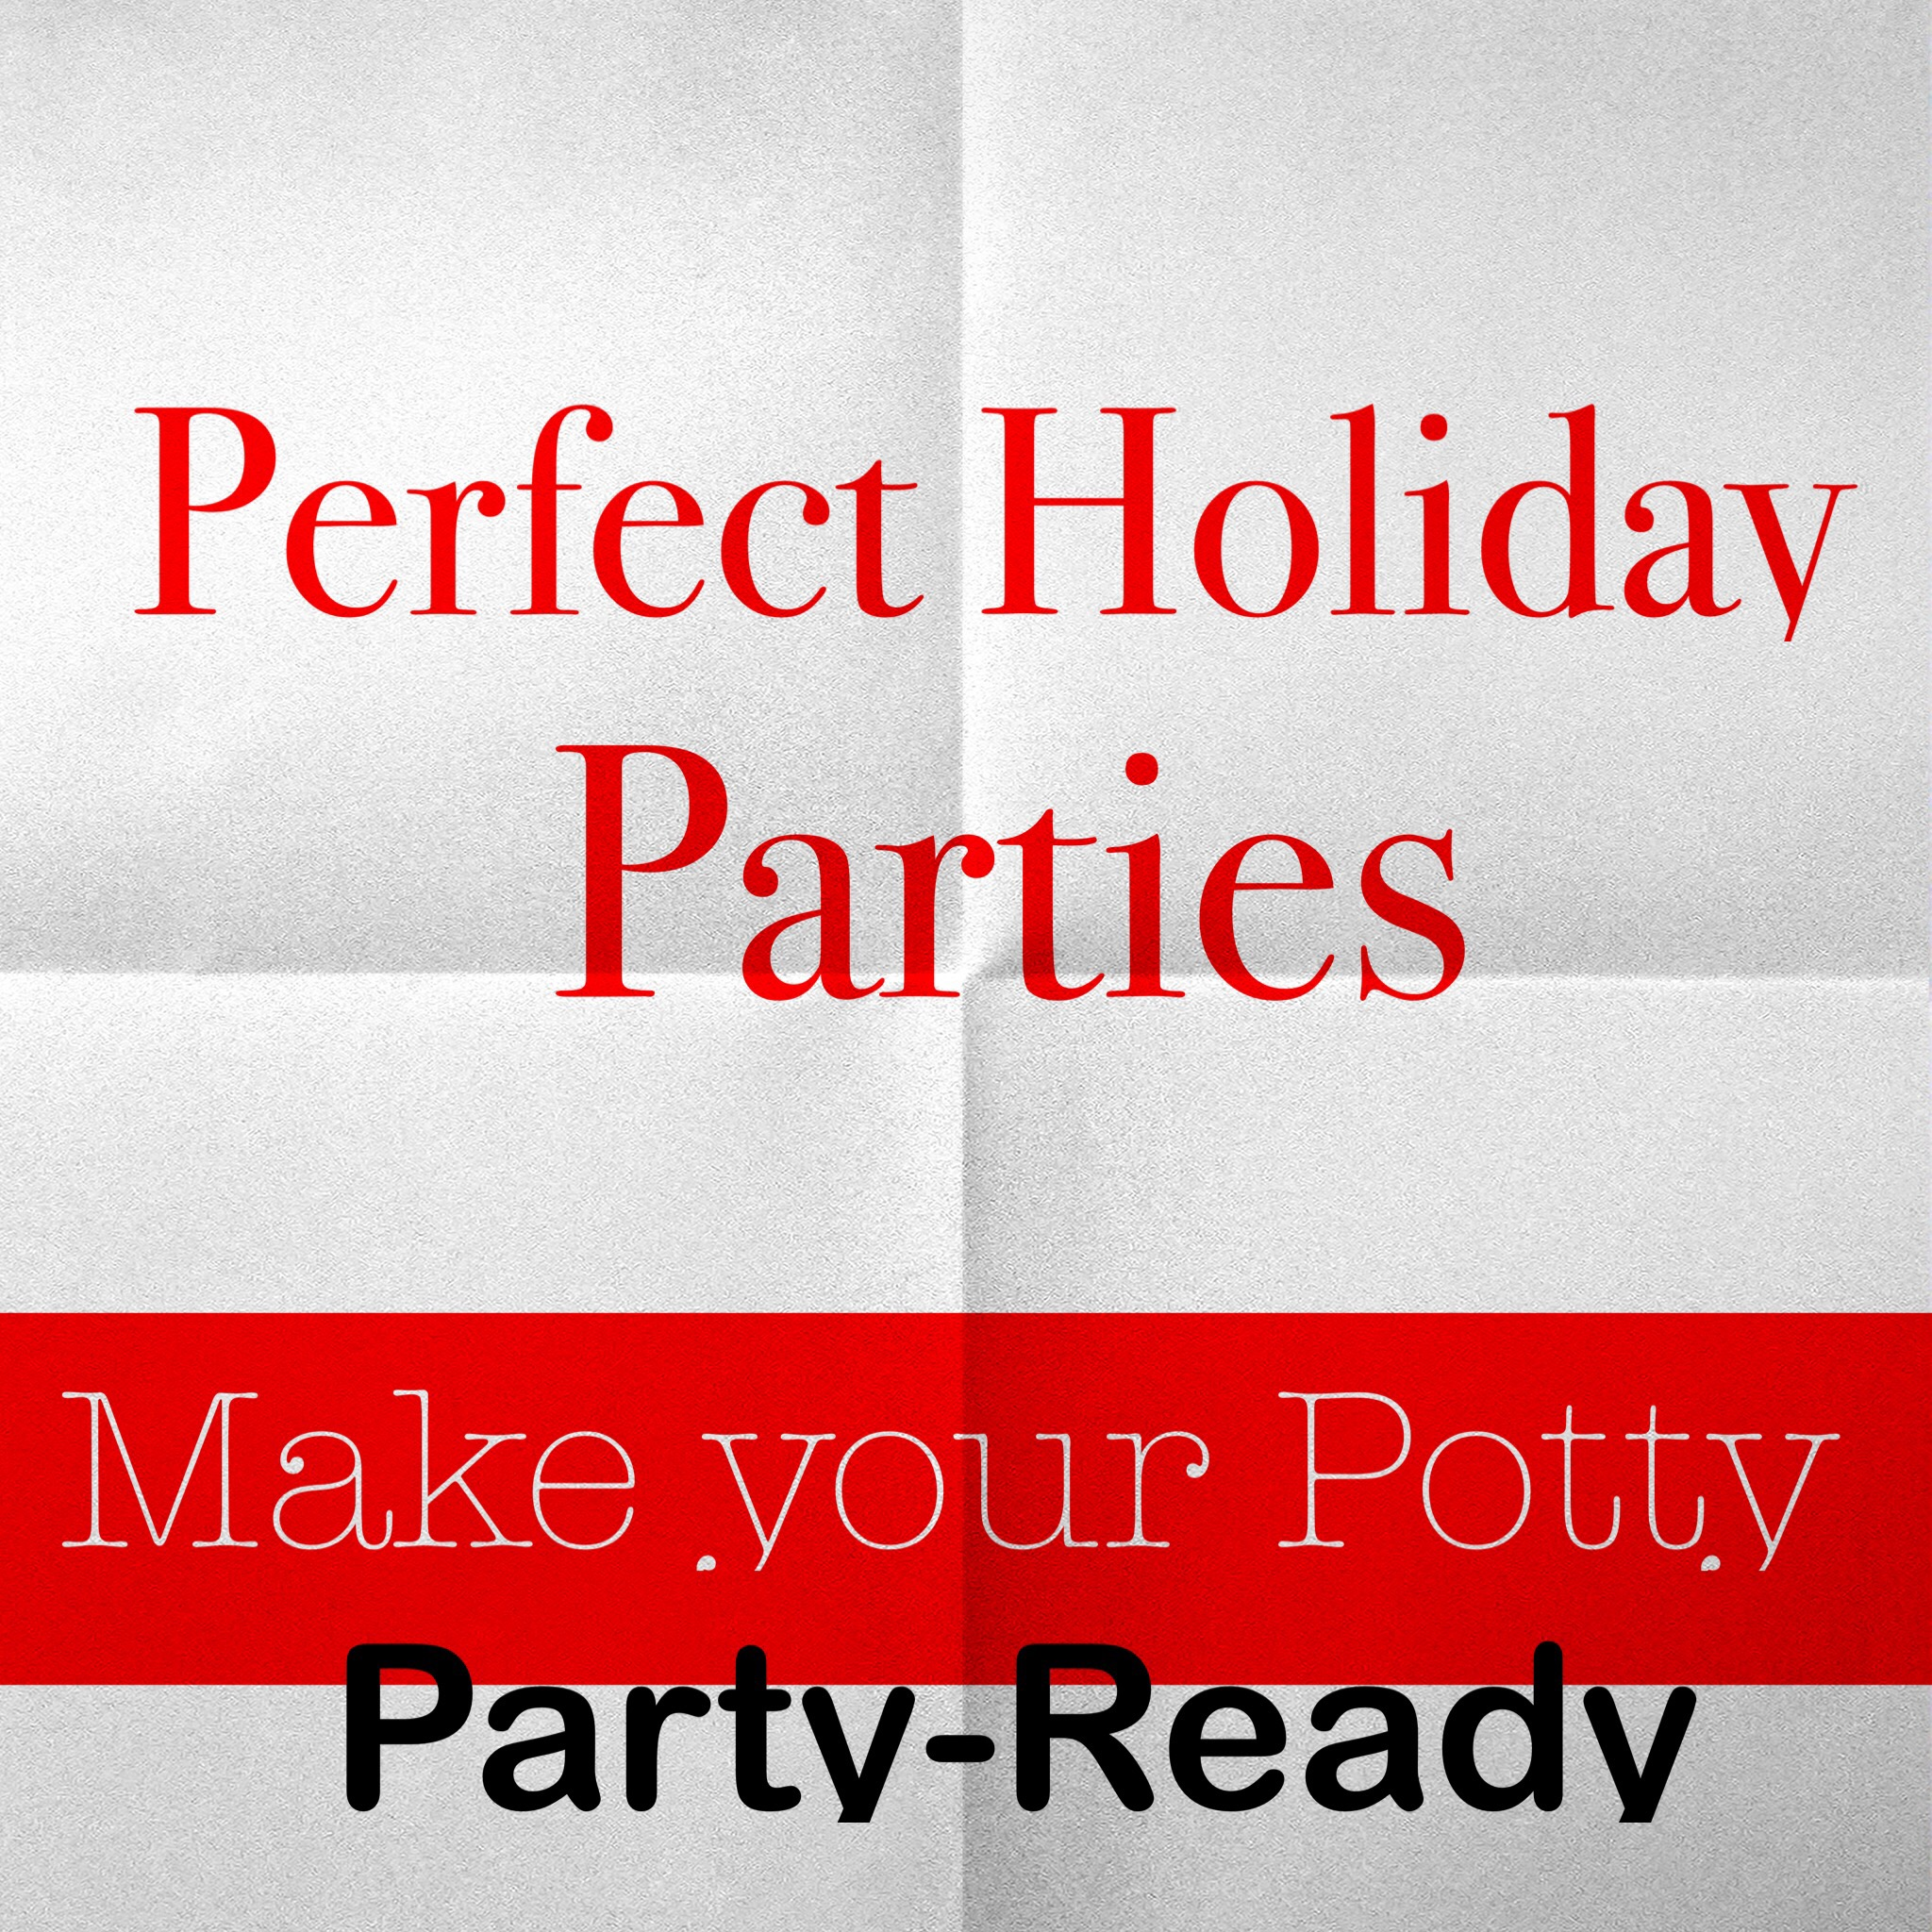 Perfect Holiday Parties: Make Your Potty Party-Ready